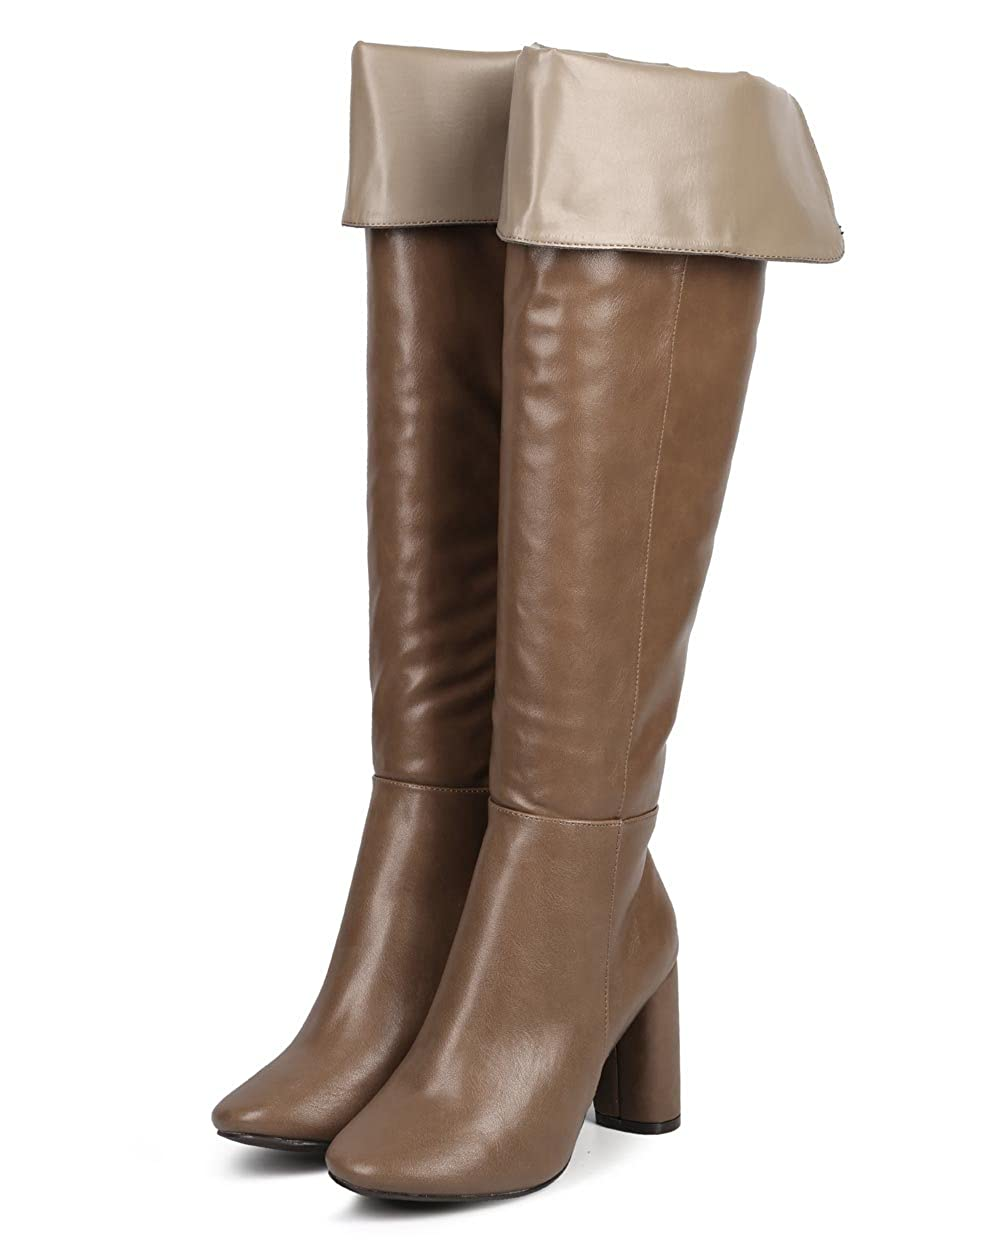 Women's Beige Faux Leather Fold Over Knee-High Tailored Boot - DeluxeAdultCostumes.com